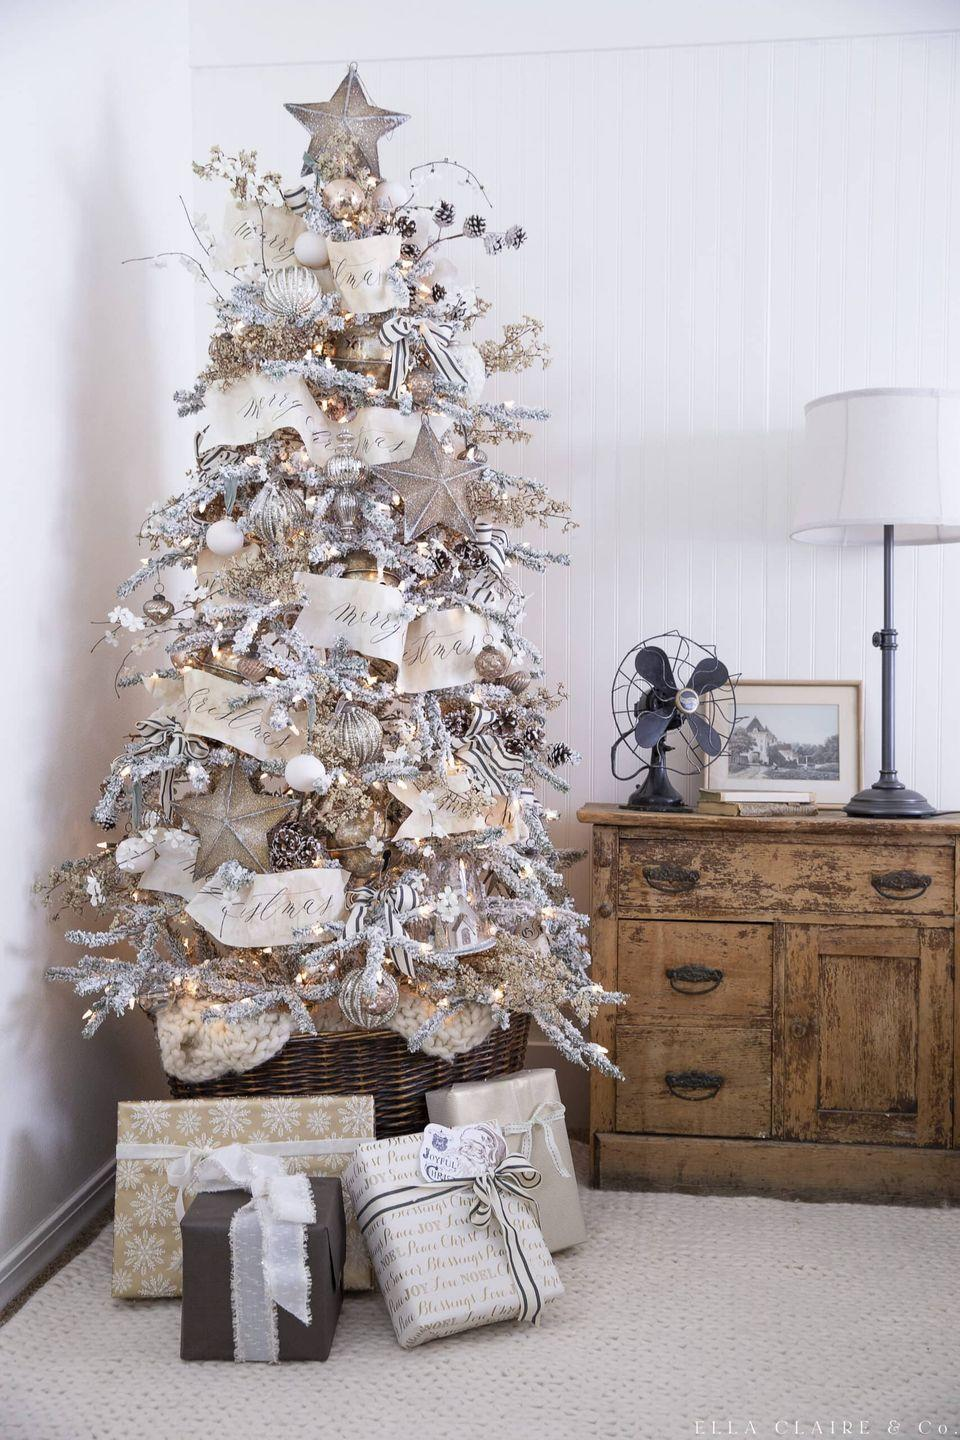 """<p>If you're going for an elegant Christmas tree this year, look no further. This gold tree with white, cream, and other metallic neutrals will make any room in the house shine. </p><p><strong><em>Get the tutorial at <a href=""""https://www.ellaclaireinspired.com/gold-christmas-tree/"""" rel=""""nofollow noopener"""" target=""""_blank"""" data-ylk=""""slk:Ella Claire & Co"""" class=""""link rapid-noclick-resp"""">Ella Claire & Co</a>.</em></strong></p><p><a class=""""link rapid-noclick-resp"""" href=""""https://www.amazon.com/Boao-Valentines-Ornament-Five-Pointed-Decoration/dp/B07YDR3JM1?tag=syn-yahoo-20&ascsubtag=%5Bartid%7C10070.g.2025%5Bsrc%7Cyahoo-us"""" rel=""""nofollow noopener"""" target=""""_blank"""" data-ylk=""""slk:BUY GOLD STAR ORNAMENTS"""">BUY GOLD STAR ORNAMENTS</a></p>"""